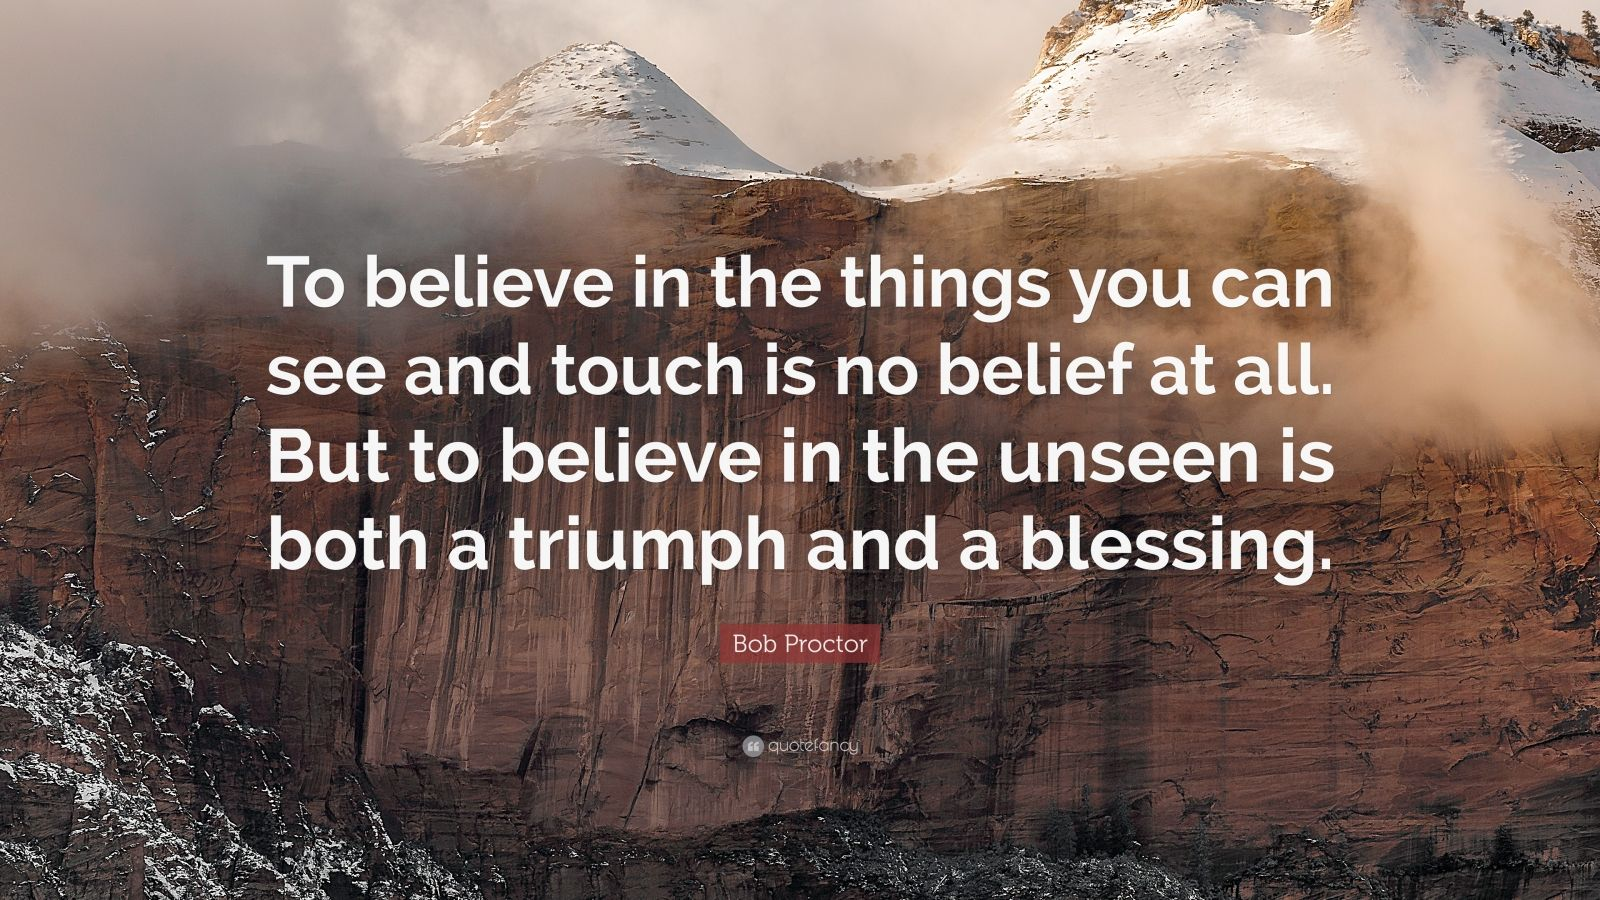 """Bob Proctor Quote: """"To believe in the things you can see and touch is no belief at all. But to believe in the unseen is both a triumph and a blessing."""""""